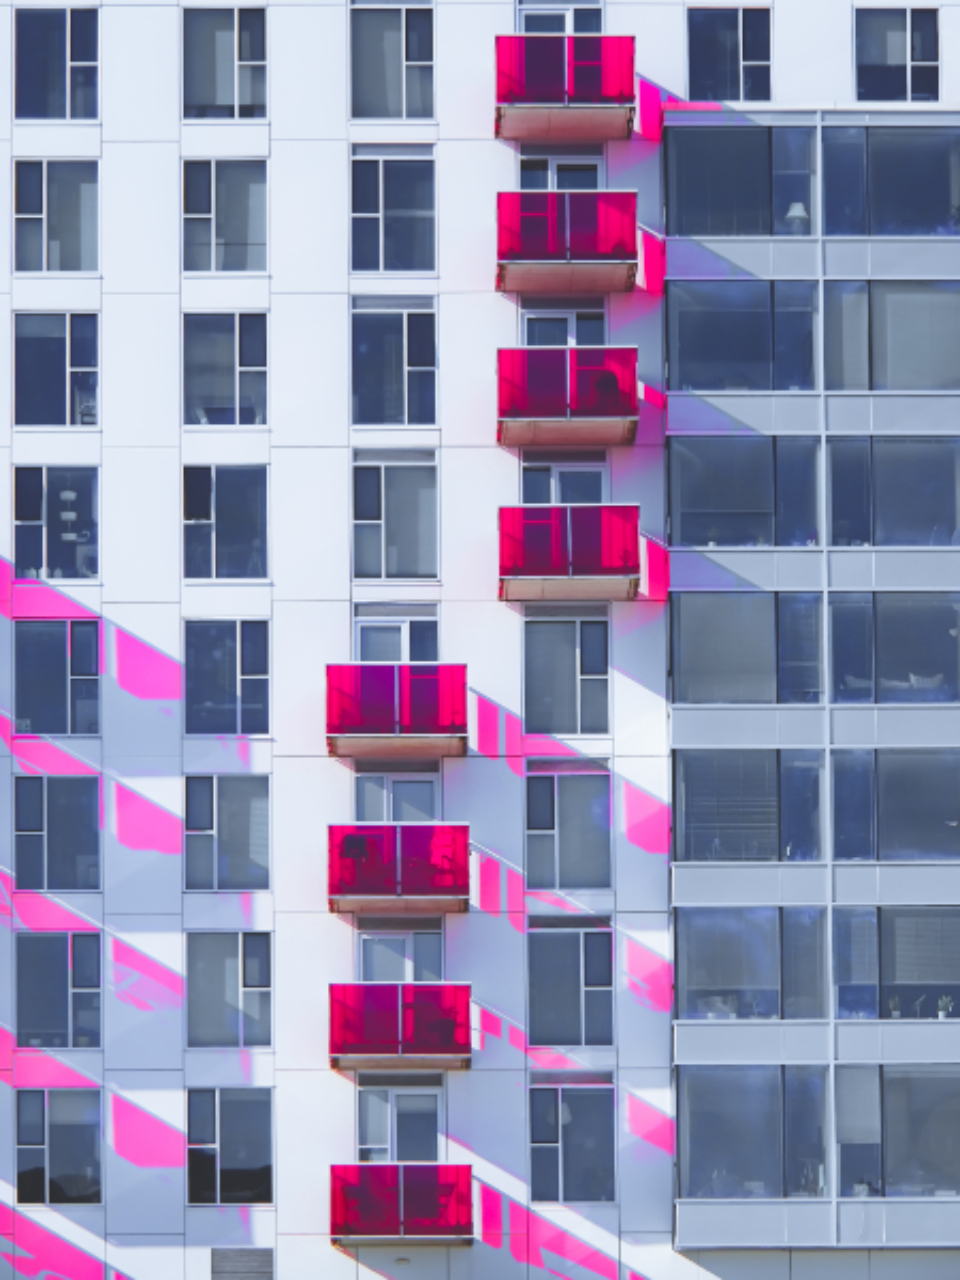 Free stock photo of building balconies